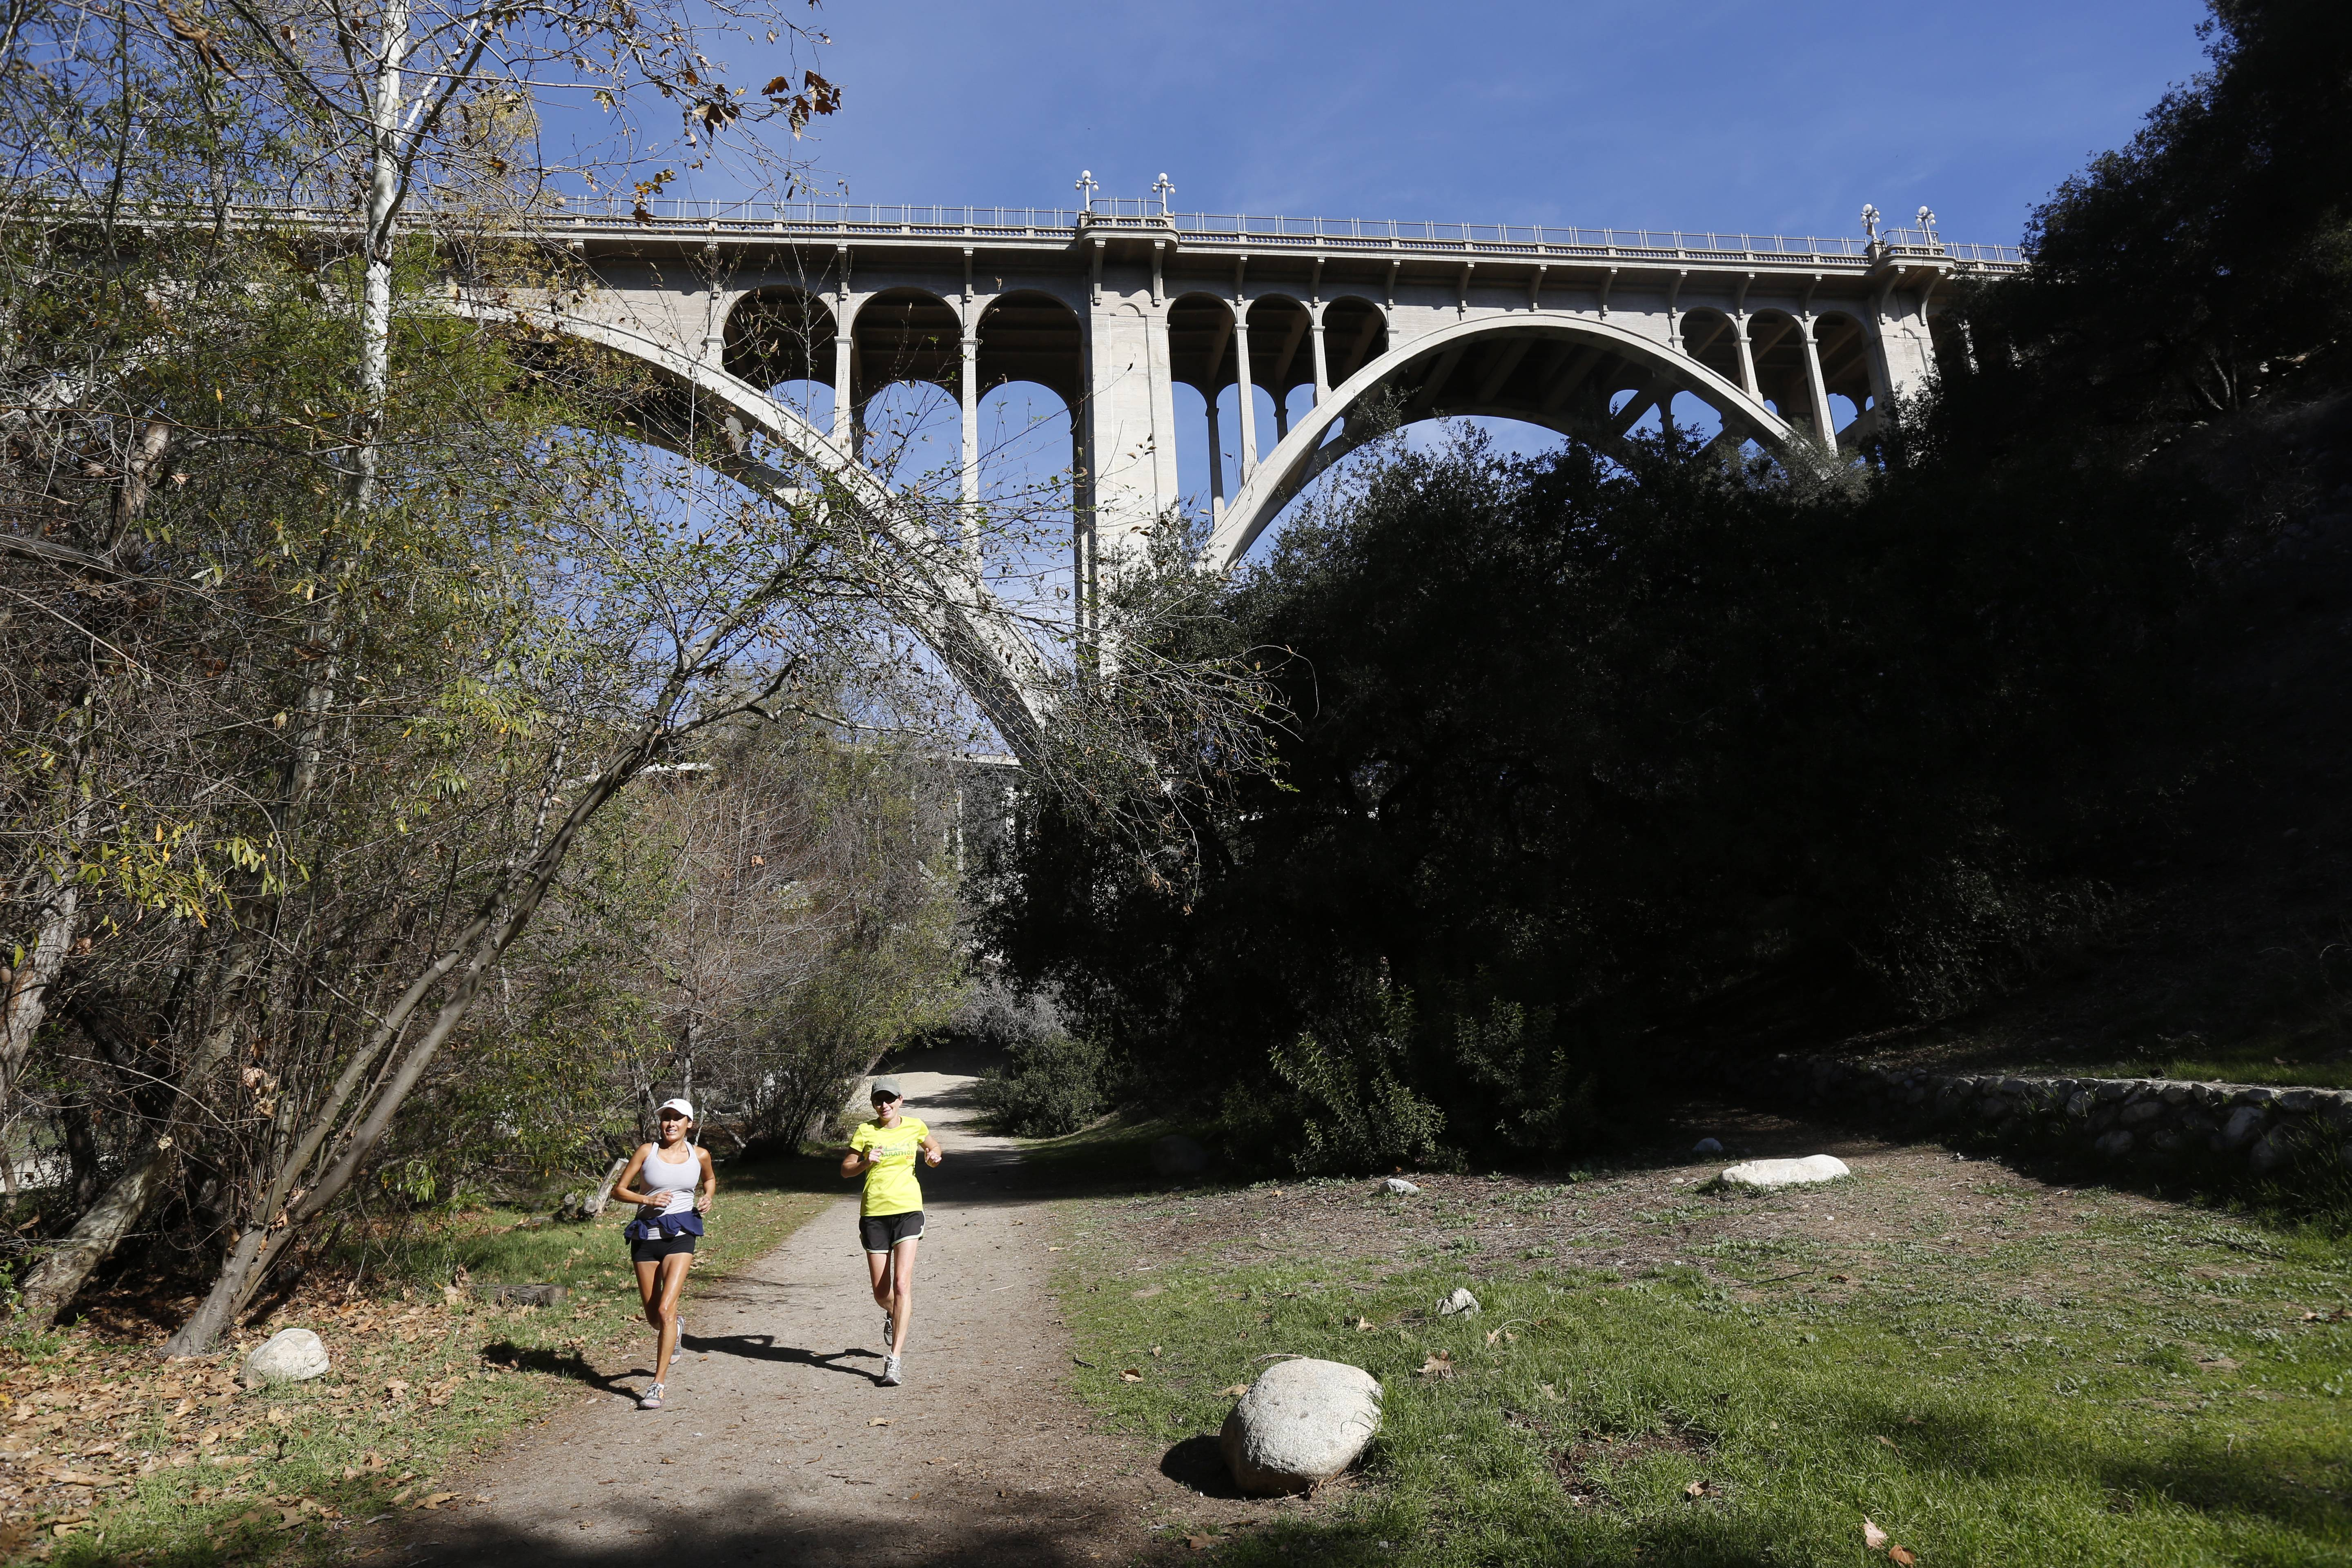 The Arroyo Seco area of Pasadena, Calif., is known for hiking, running and dog walking that includes 22 miles of trails next to a seasonal river and canyon.